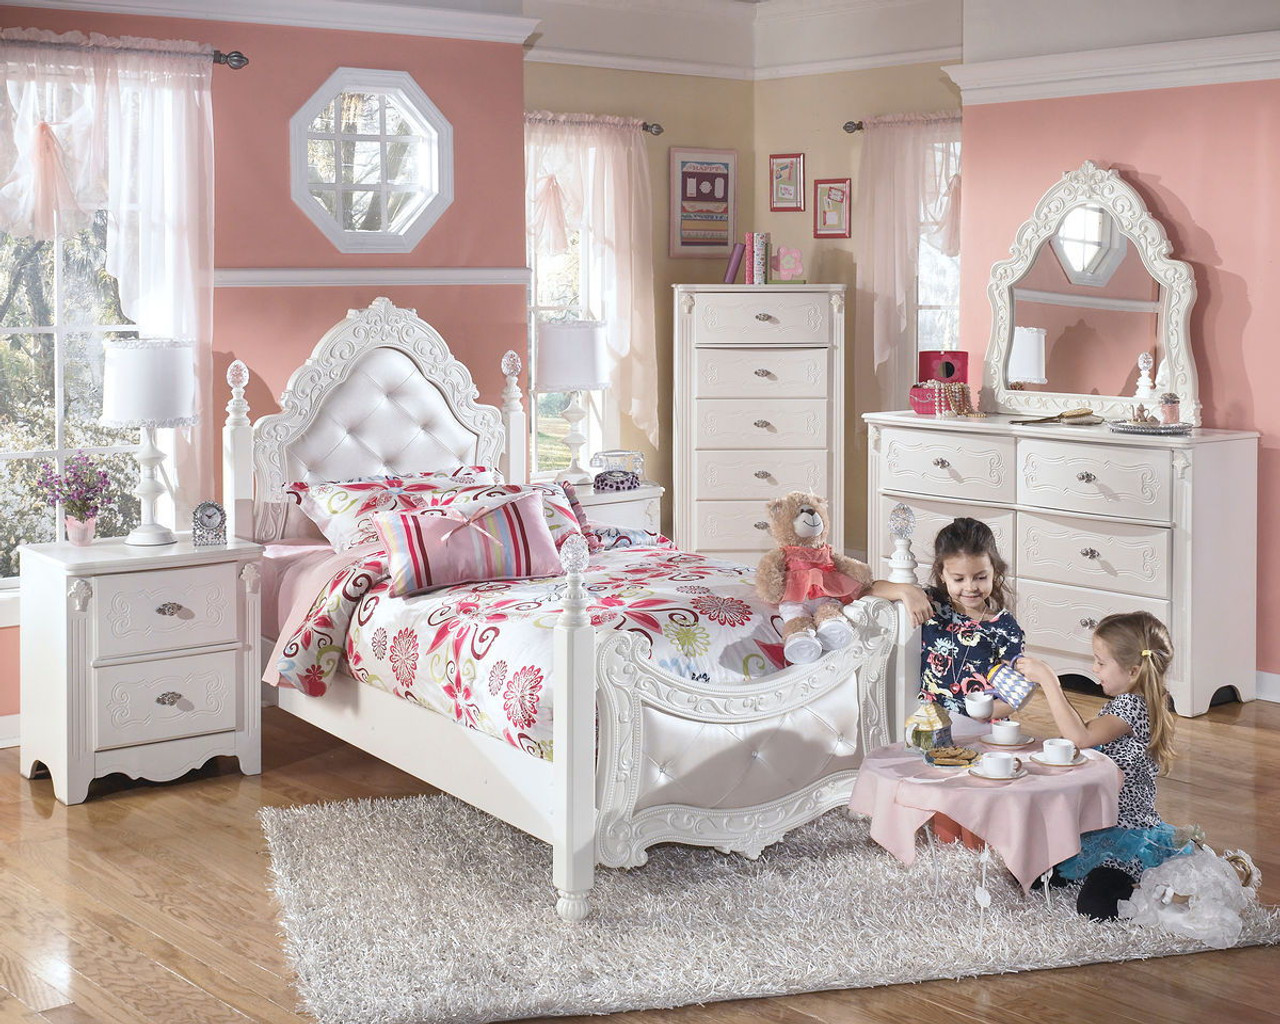 Exquisite White Dresser French Style Mirror Chest Twin Poster Bed 2 Nightstands On Sale At American Furniture Of Slidell Serving Slidell La